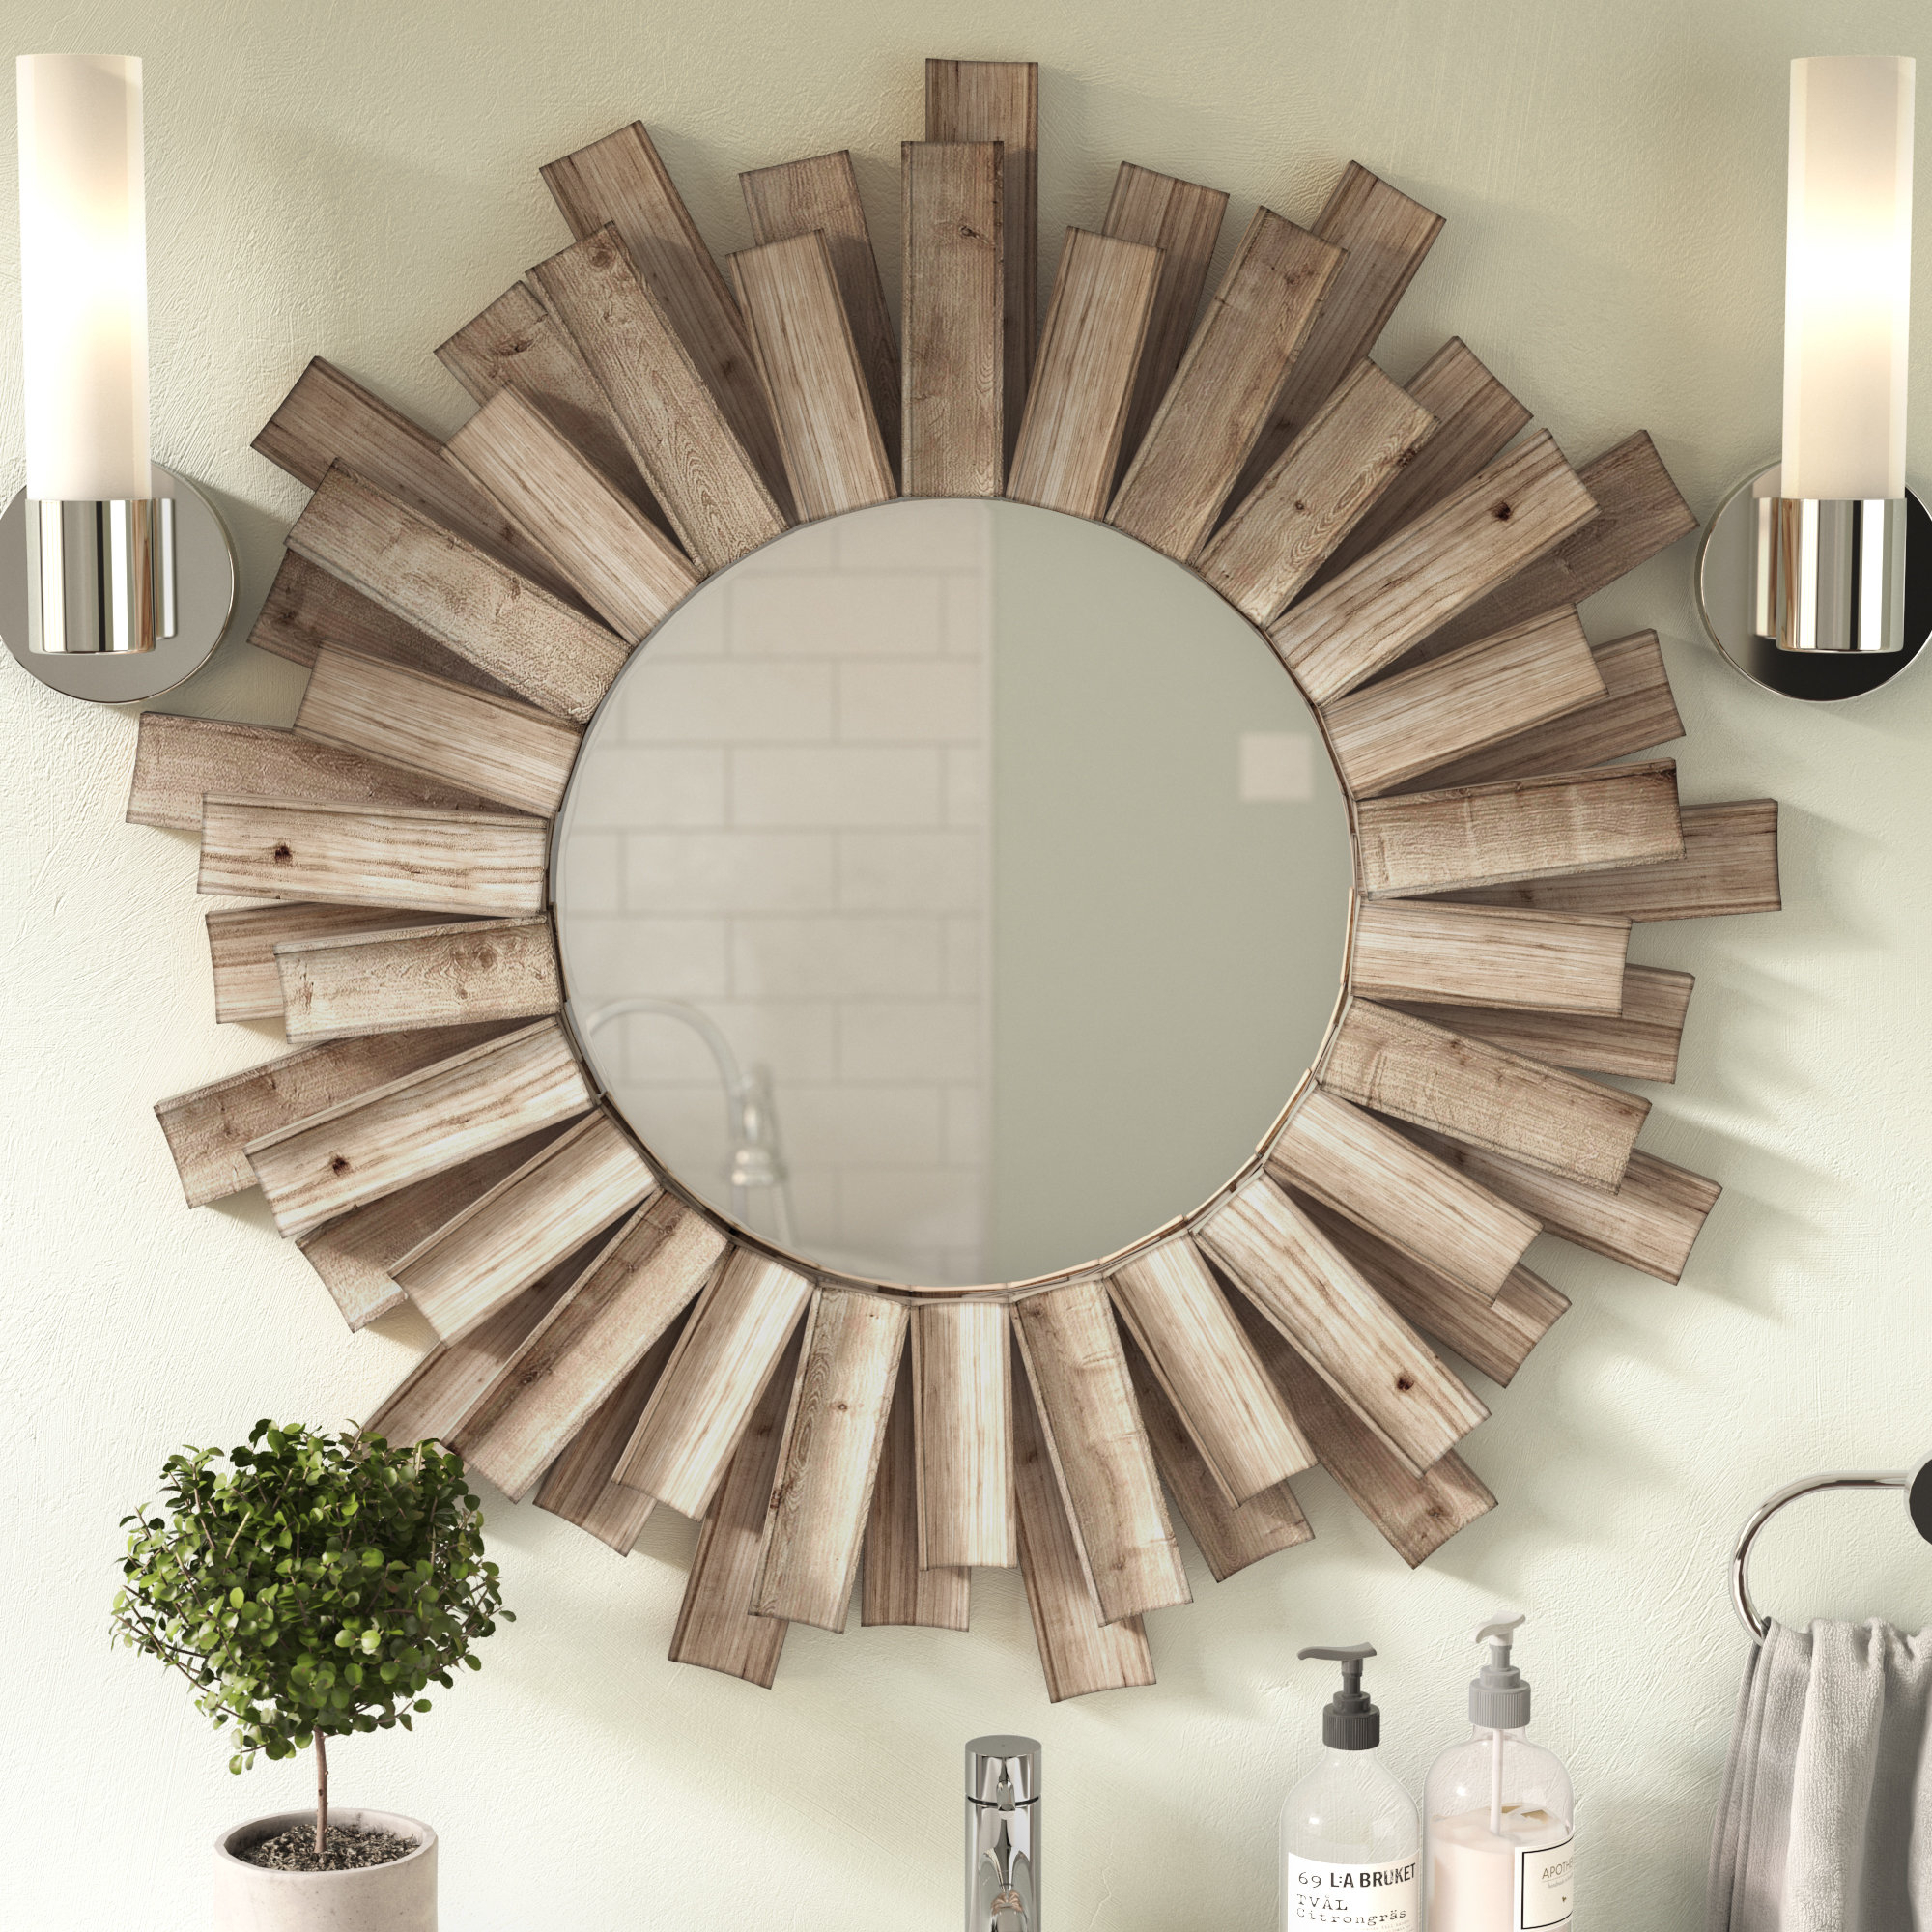 Details About Union Rustic Perillo Burst Wood Accent Mirror With Perillo Burst Wood Accent Mirrors (View 2 of 20)